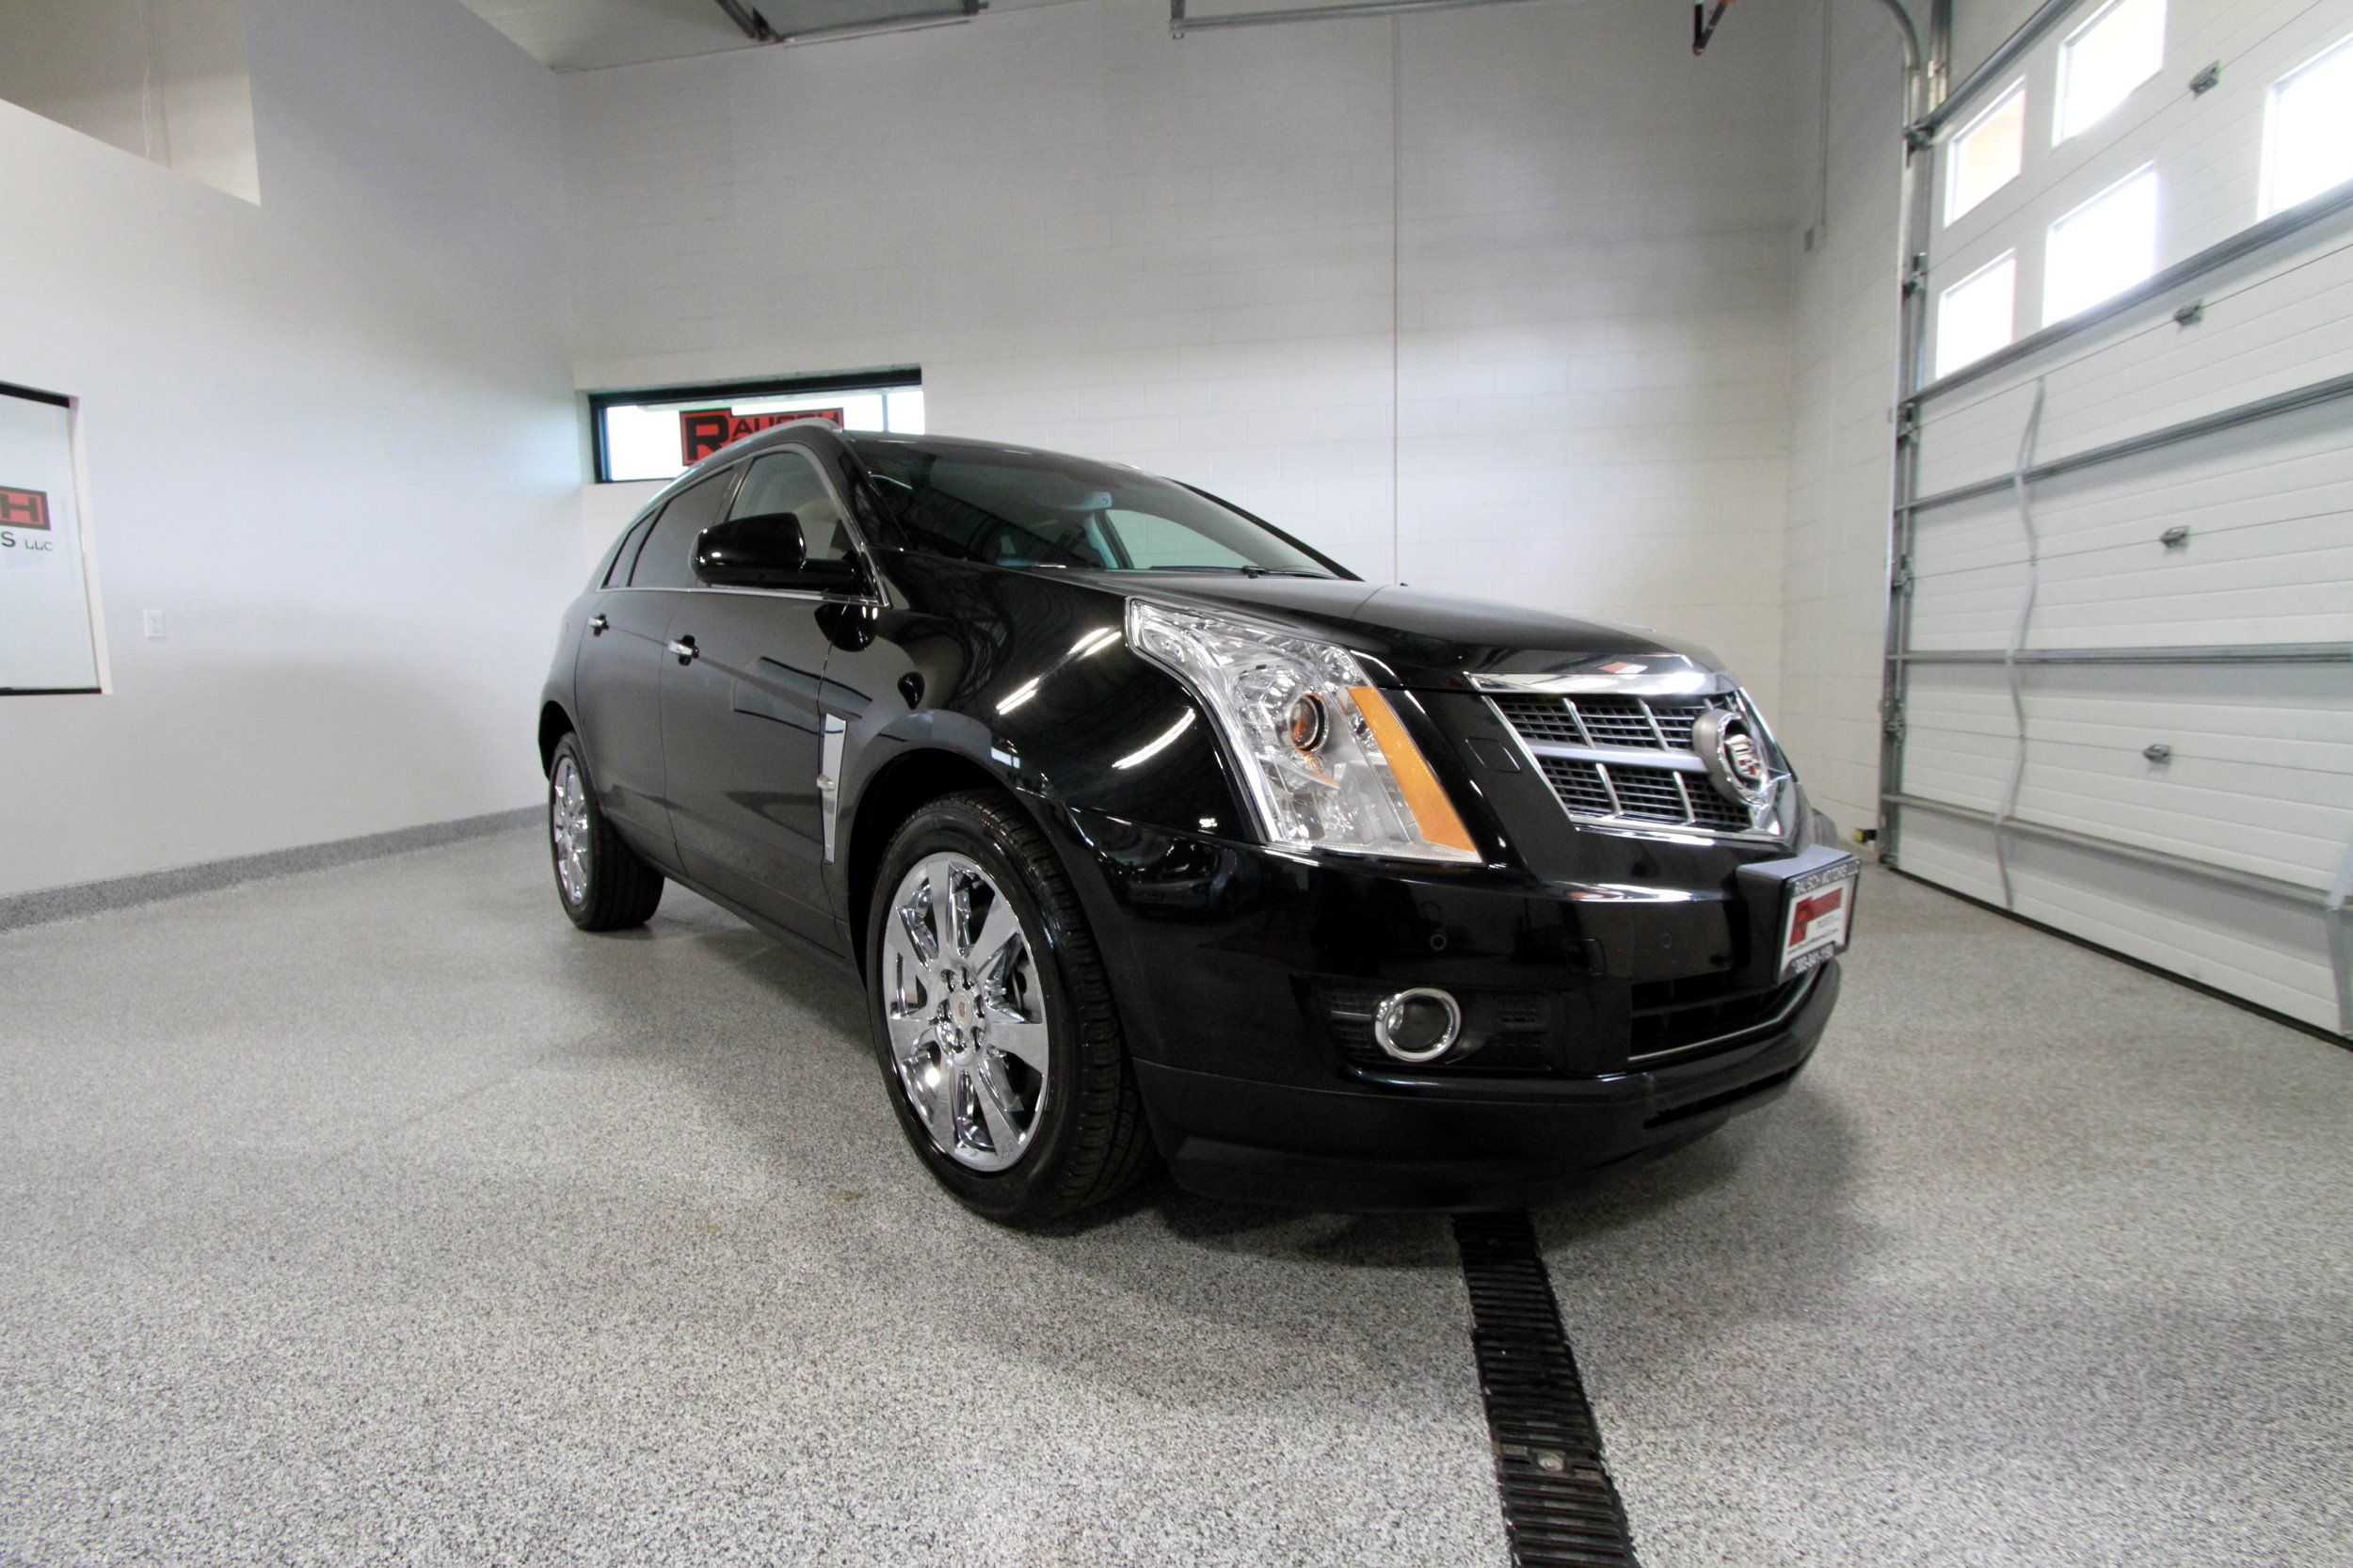 first price car drive review release picture specs and cadillac date srx